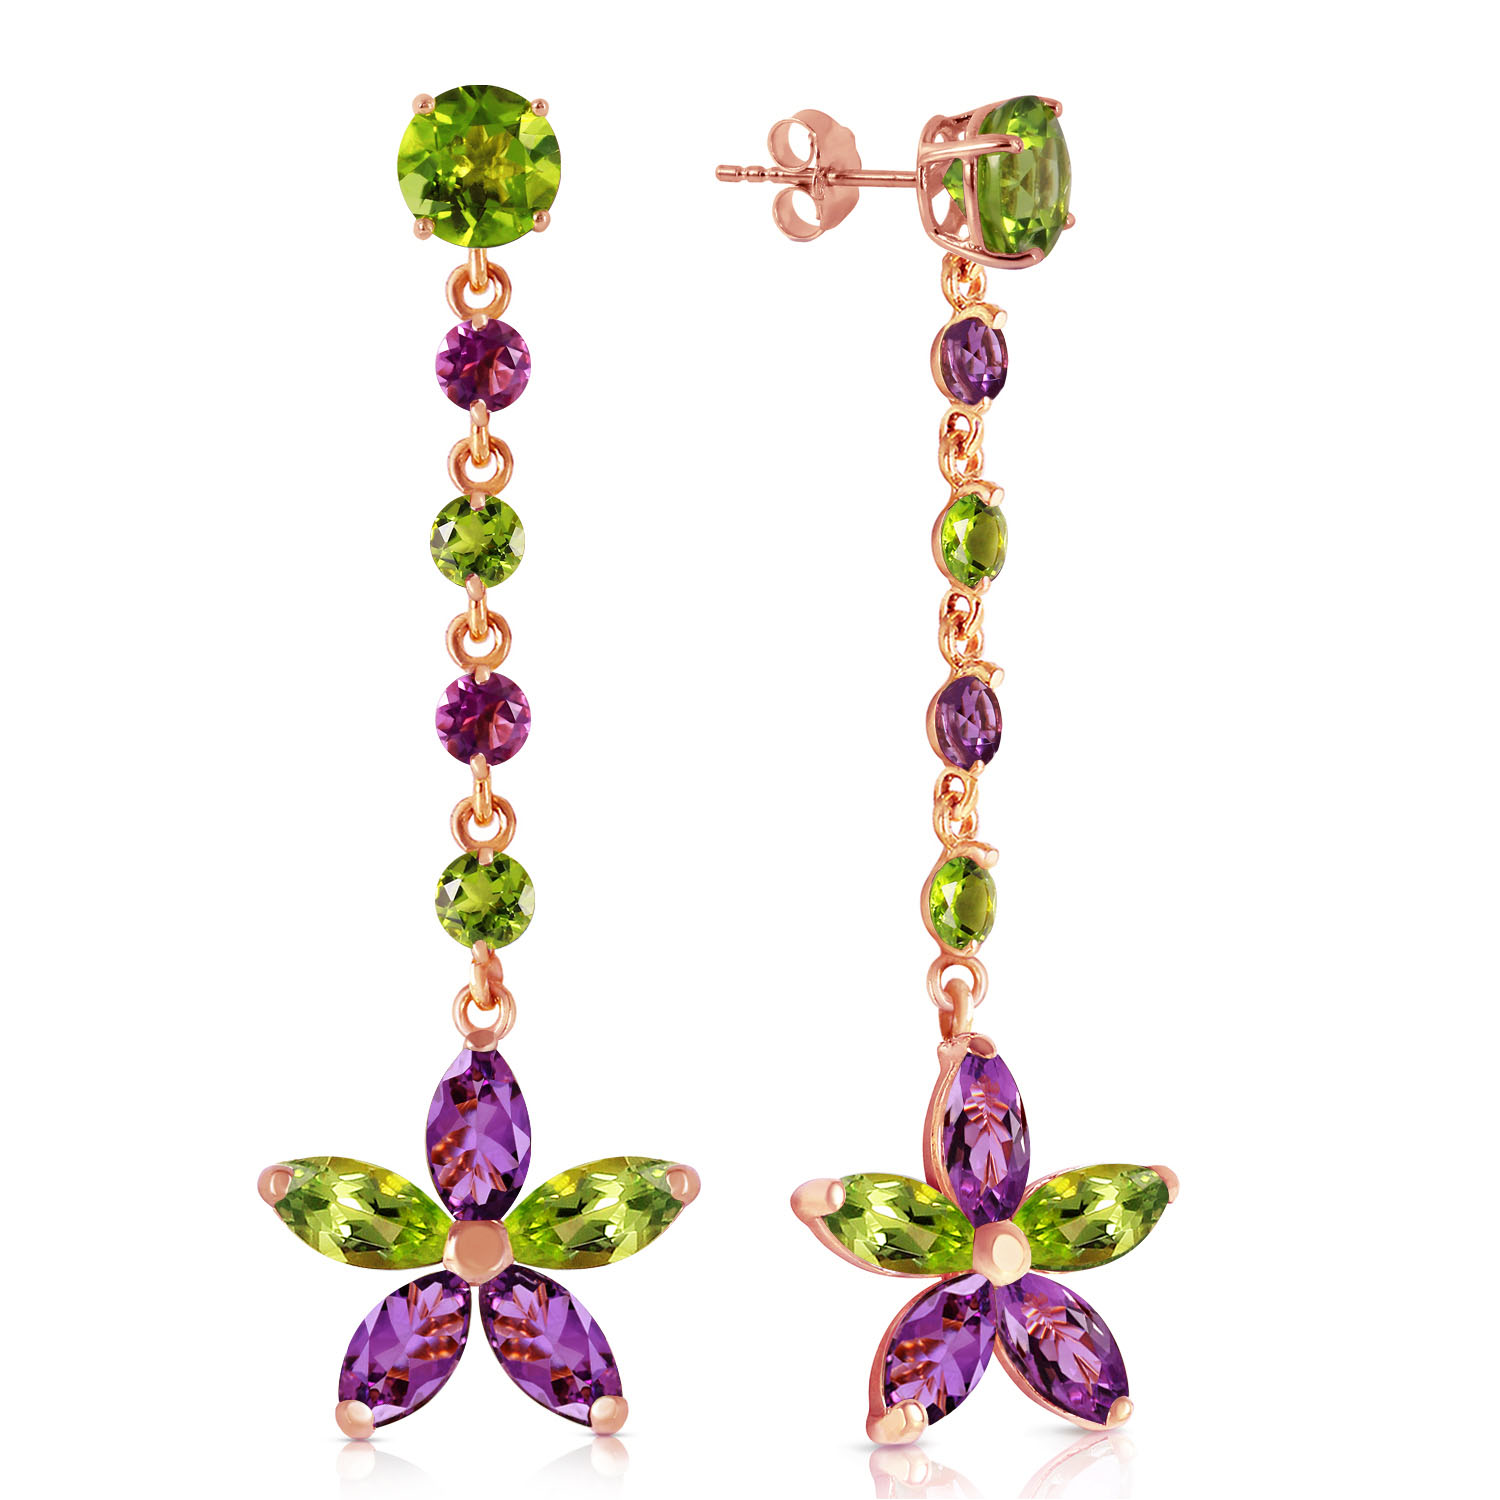 14K Solid Rose Gold Chandelier Earrings with Peridot & Amethyst